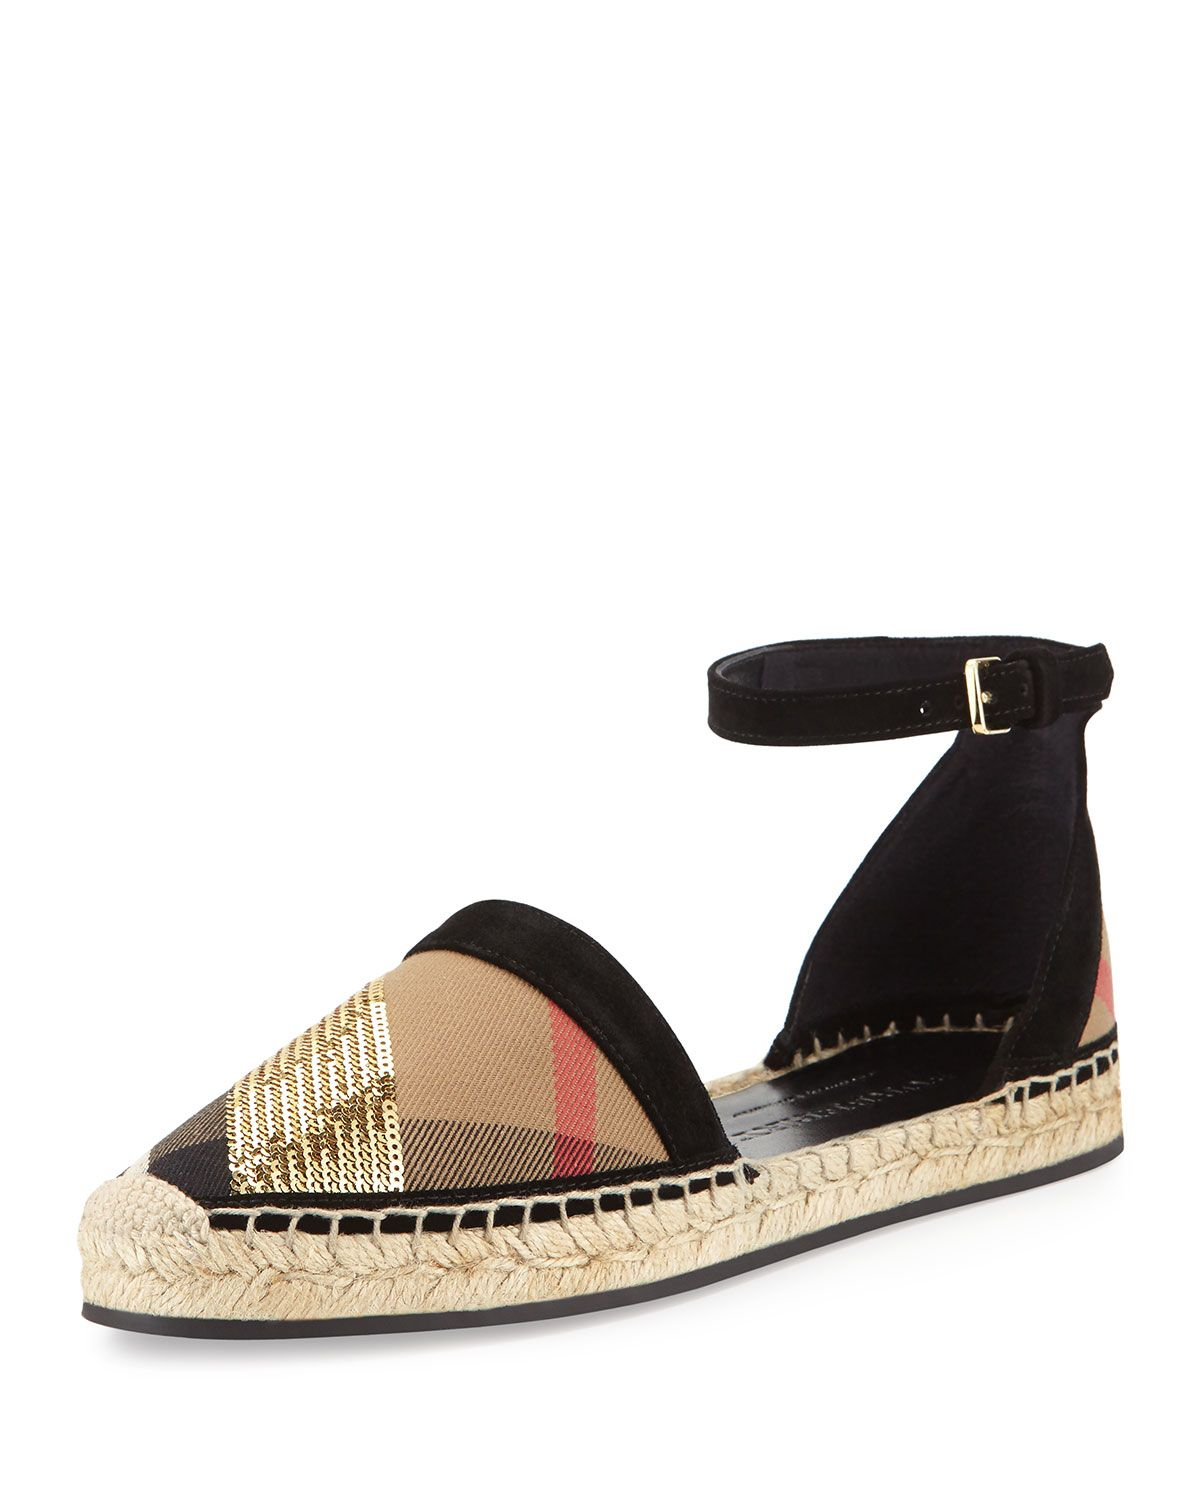 Burberry Abbingdon Sequined Check Espadrille Flat Sandal be74eaf4ea9